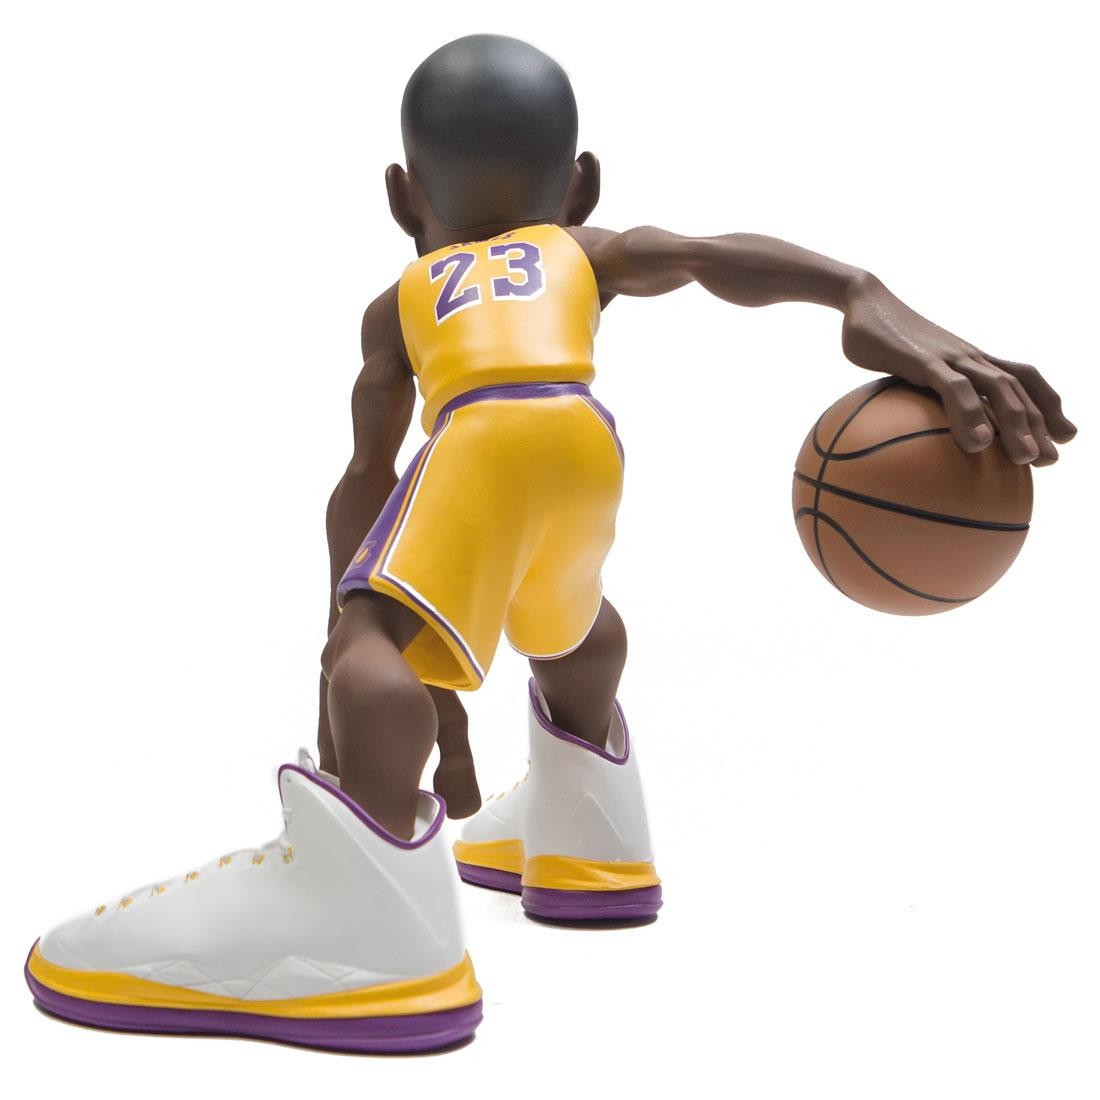 a1ee1f953ab IconAI Small Stars NBA 2018-2019 Lebron James 11 Inch Figure - Lakers Gold  Jersey (gold)